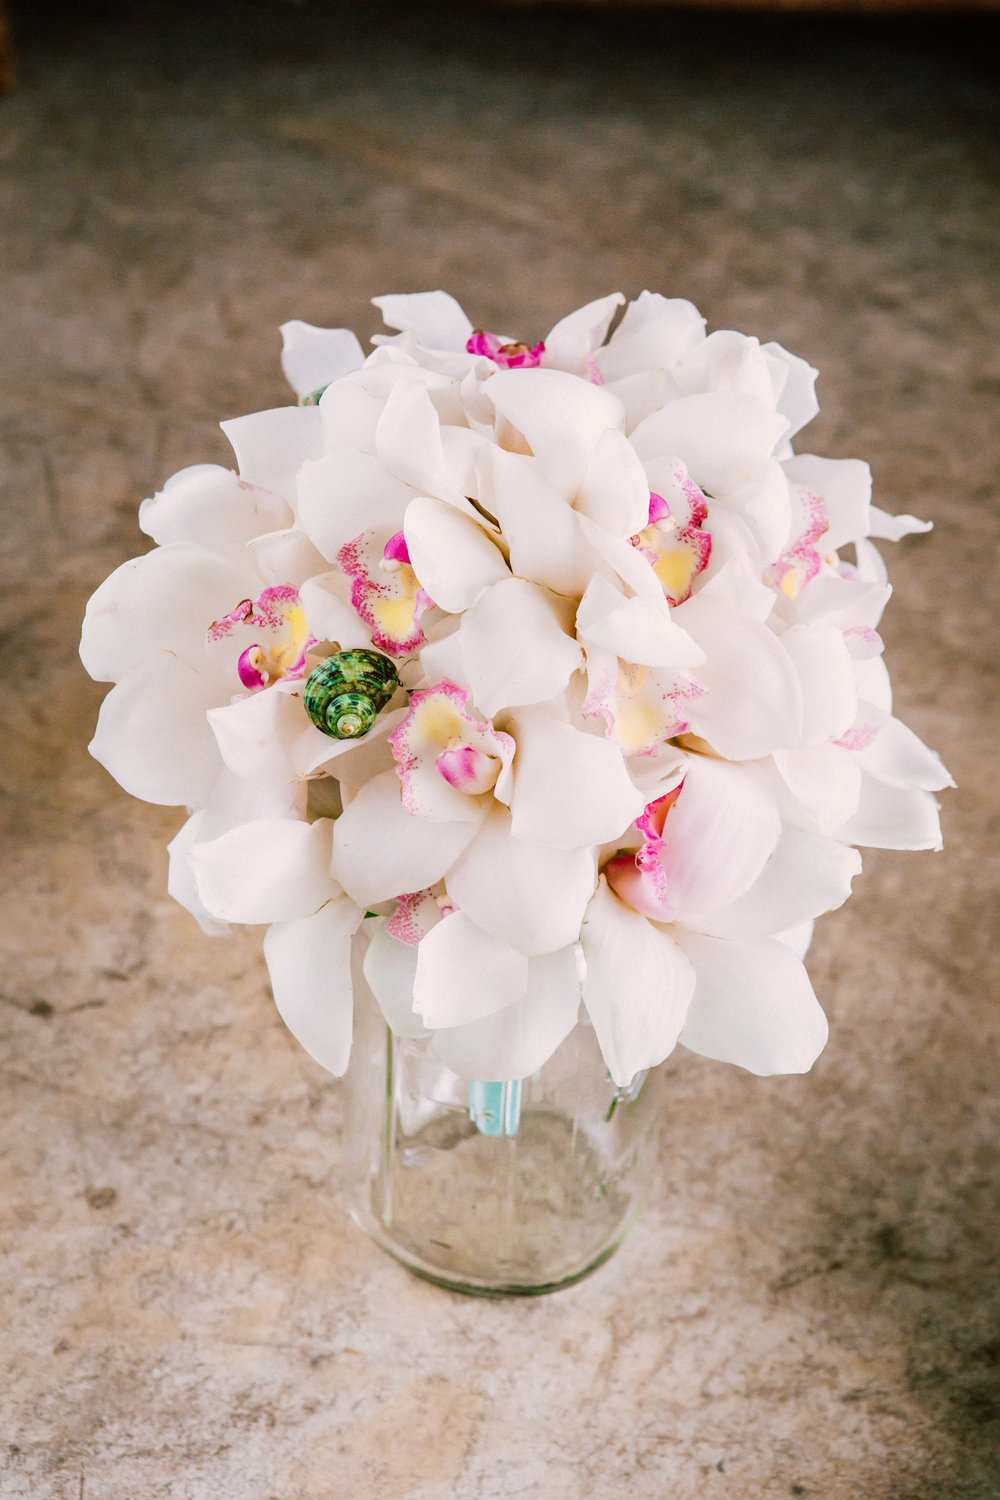 Mermaid bride bouquet, made with white and pink dendrobium orchids, green seashells, and tied in blue satin, made by Simple Roses of Daytona Beach.